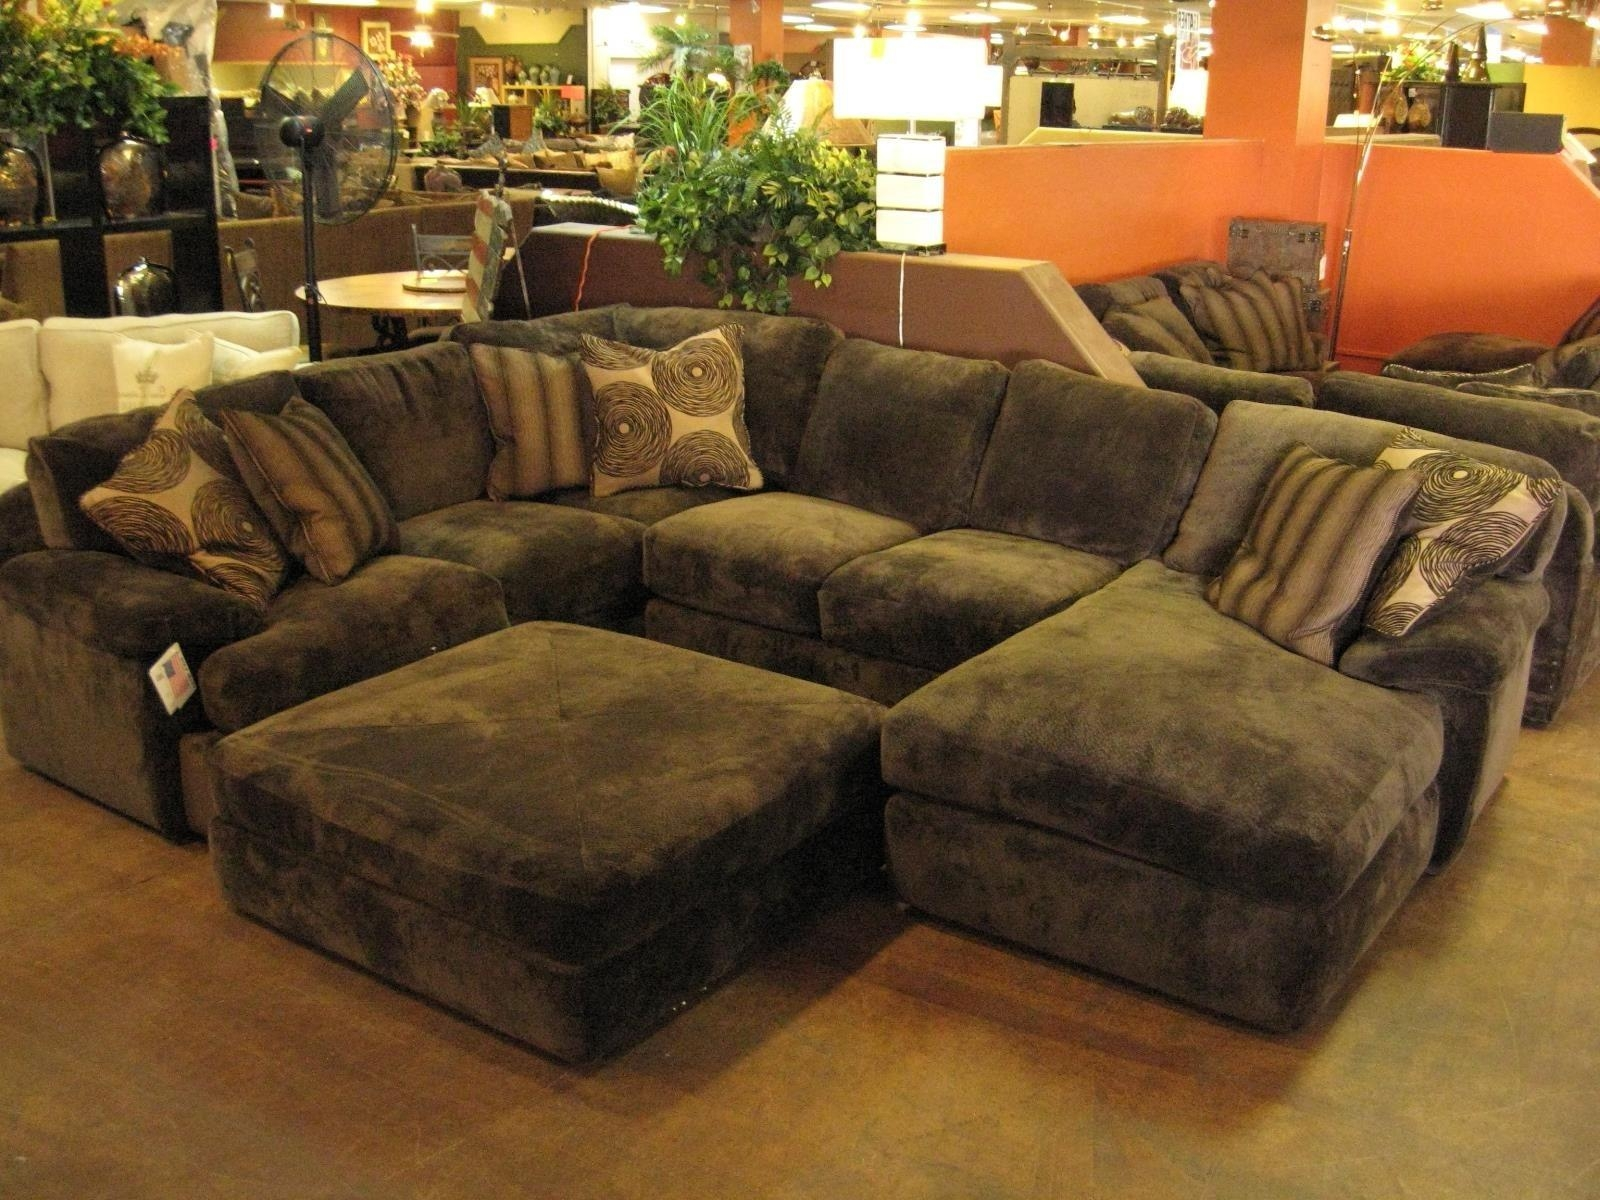 Sofas Center : Large Sectional Sofas With Chaise Southnextus With Sectional With Ottoman And Chaise (Image 20 of 20)